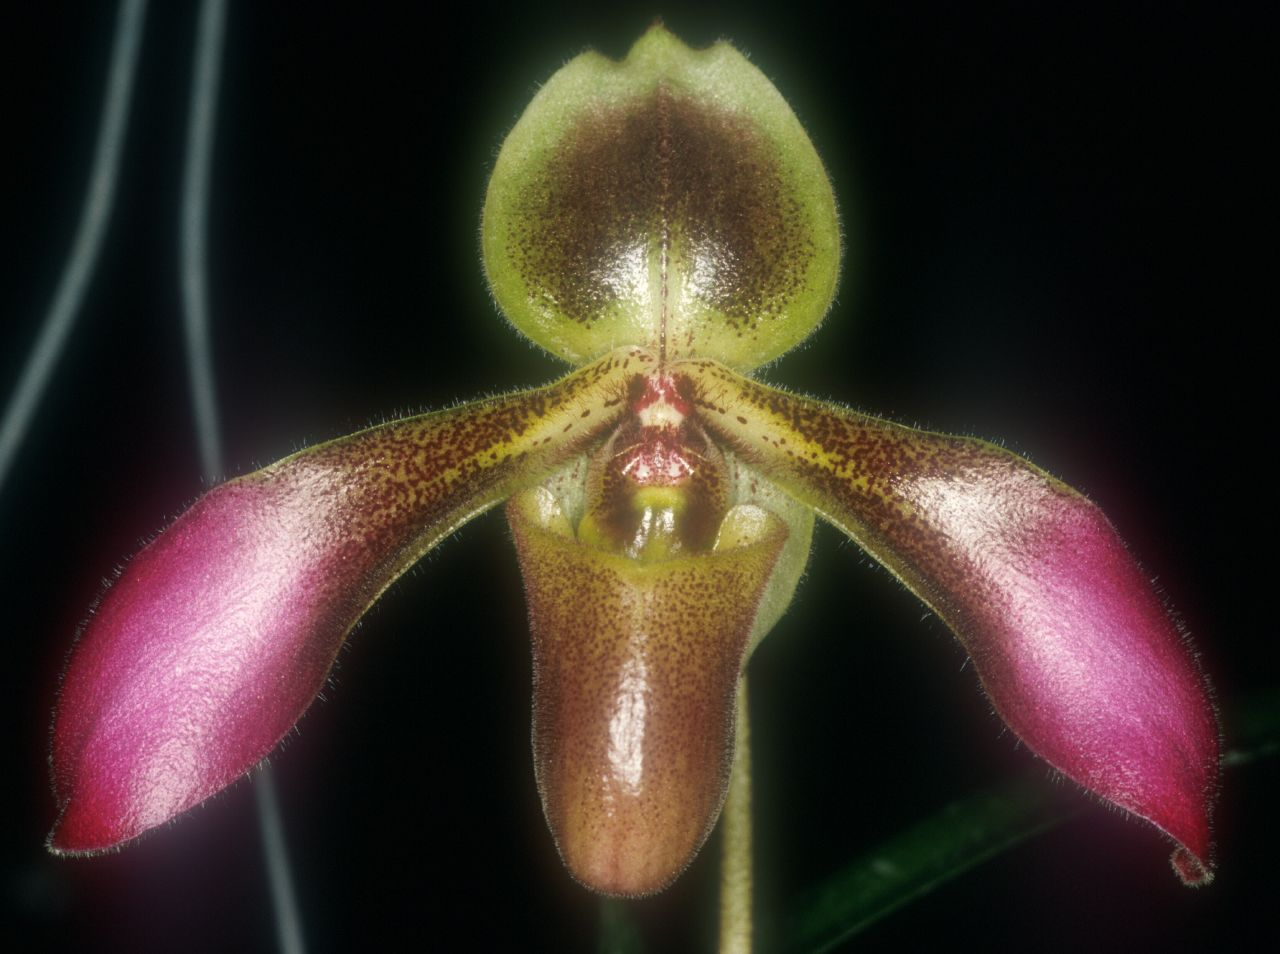 Many Paphiopedilum Orchids Have Mottled Or Patterned Leaves However This One Has Undecorated Ones Each Bisected By A Deep Crease